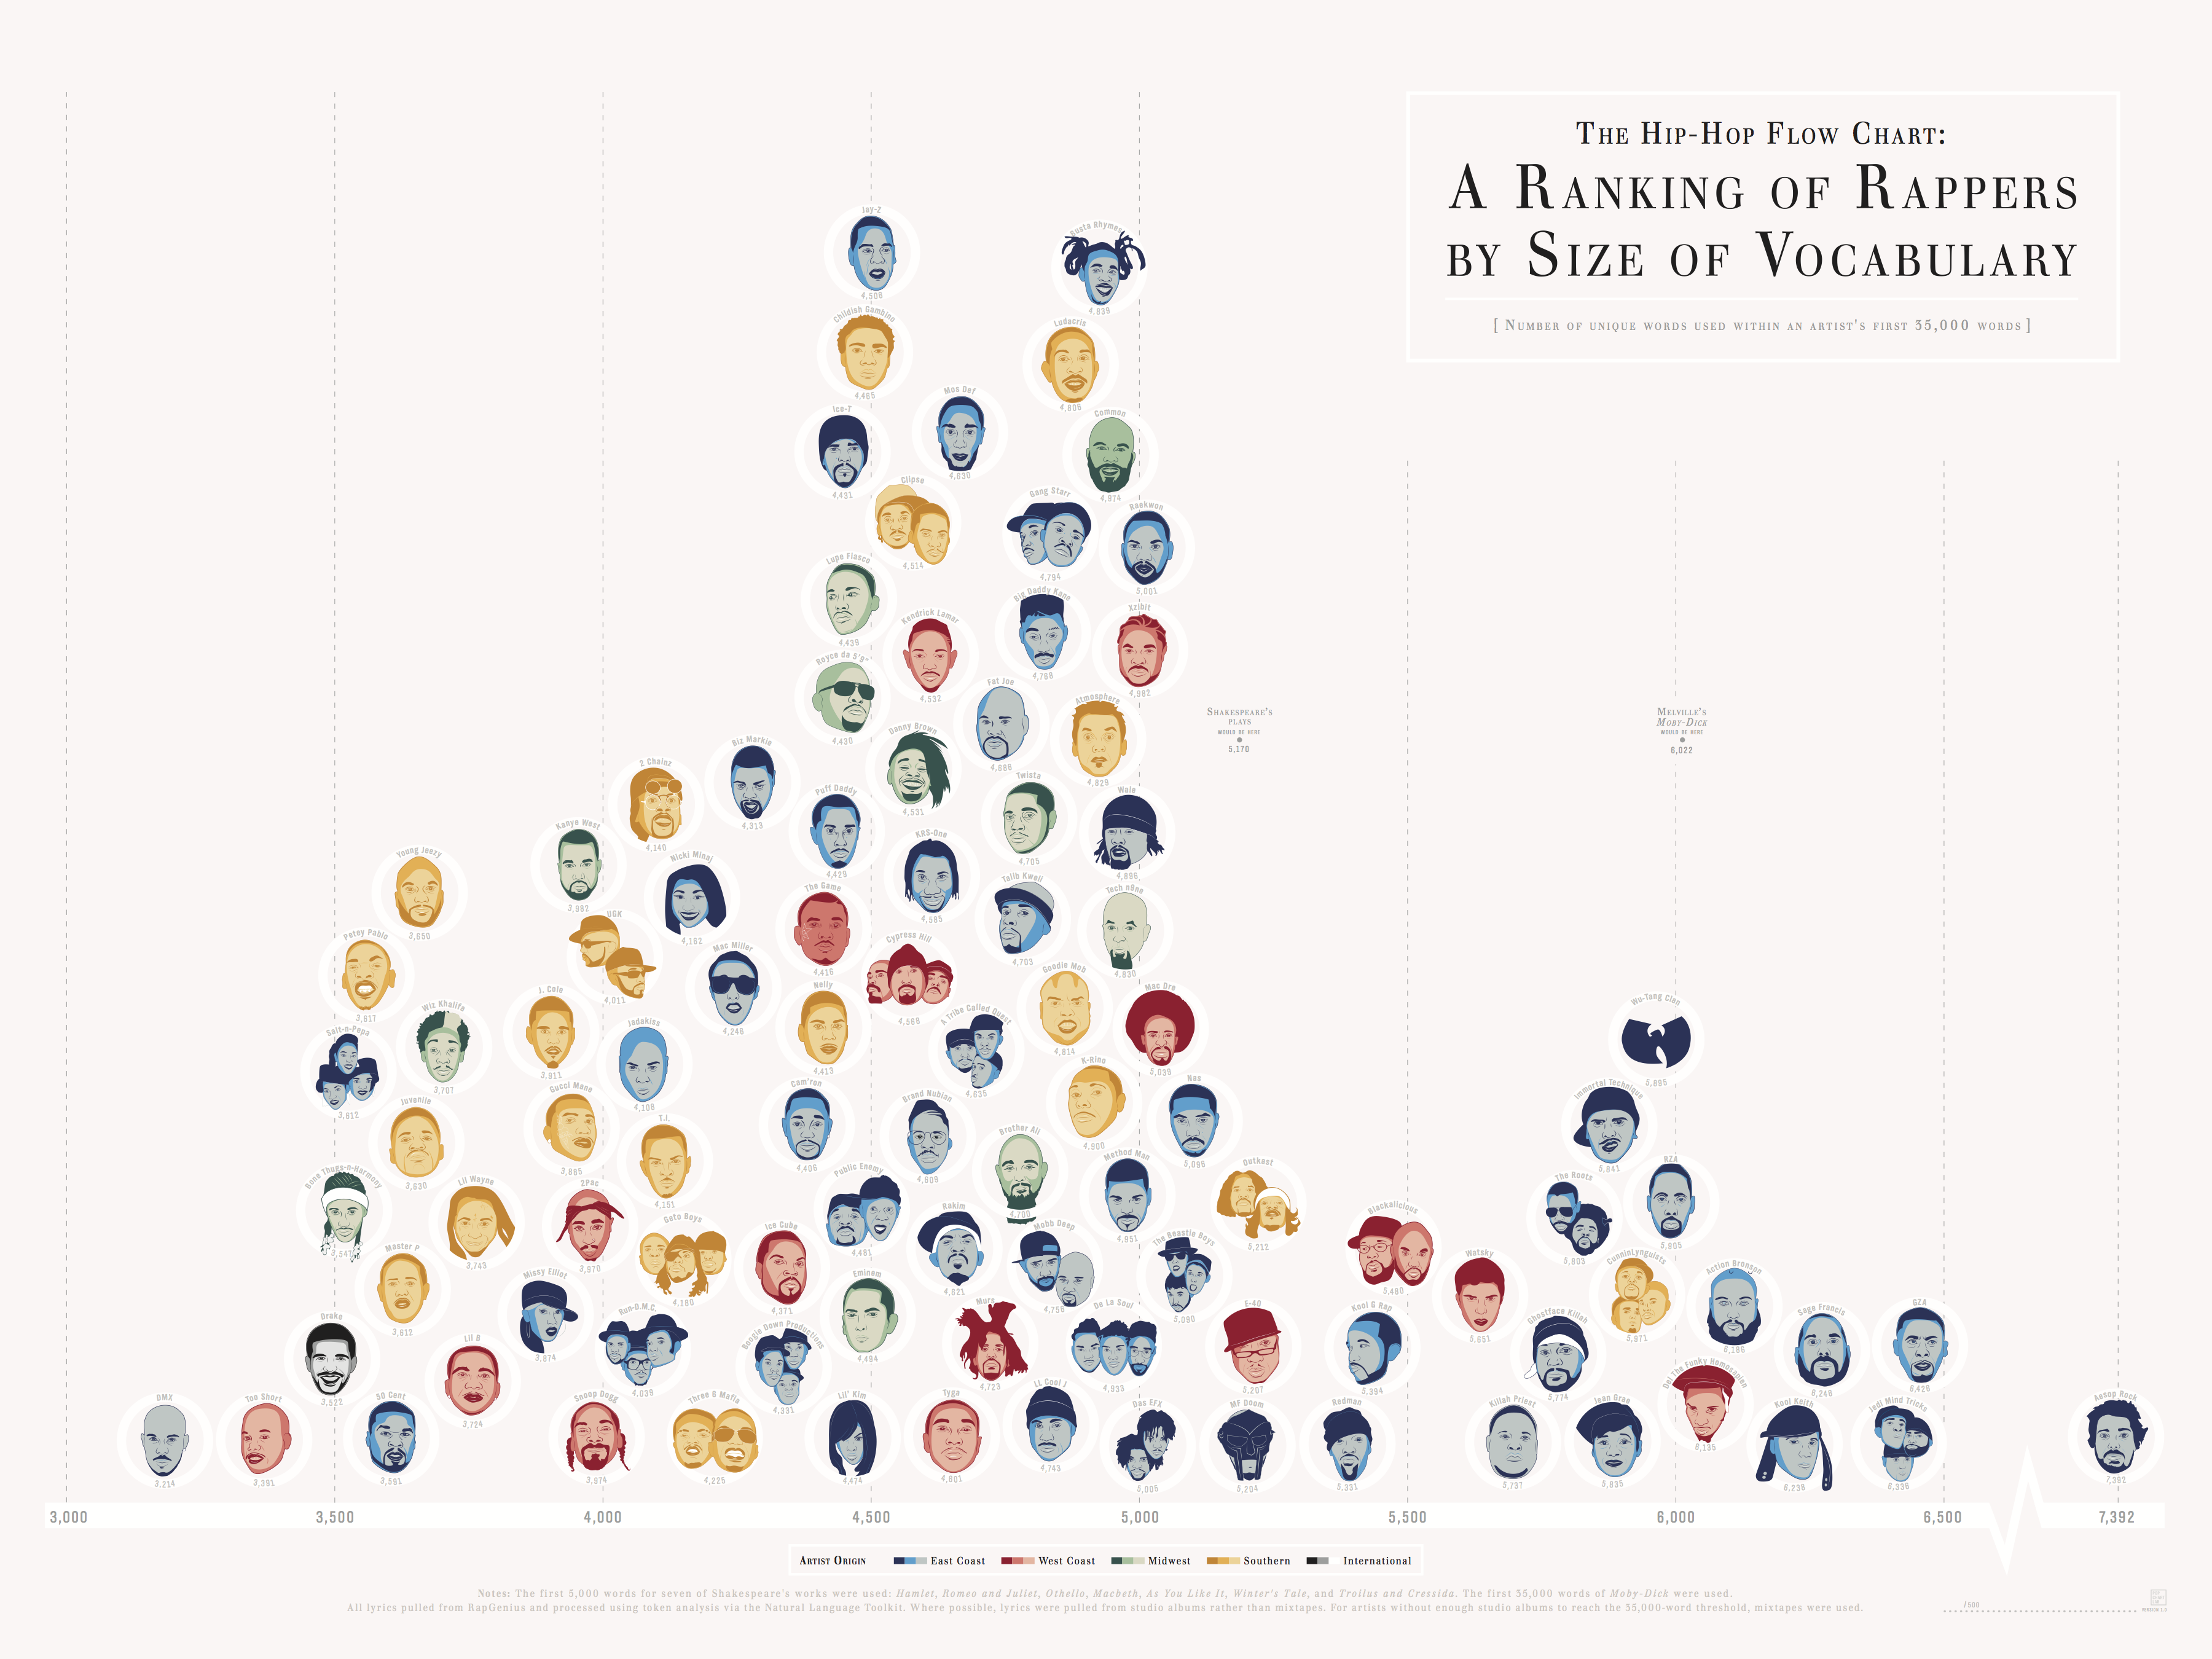 rappers-by-size-of-vocabulary